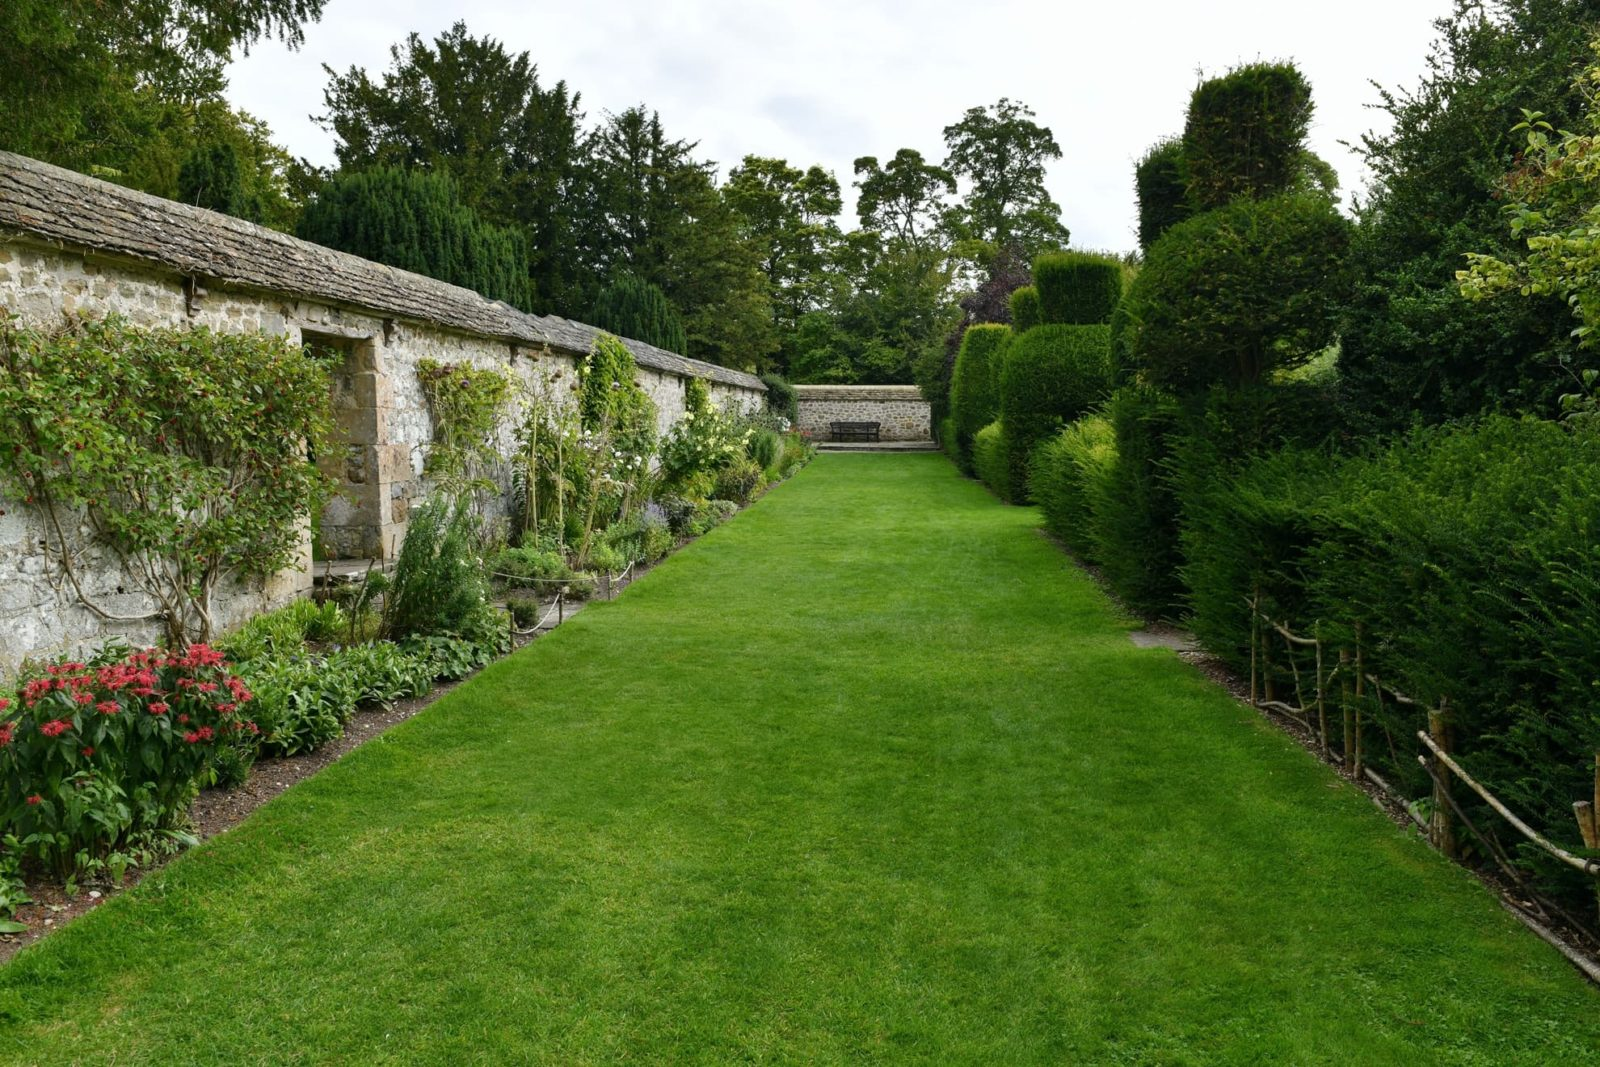 a long typical English garden with borders and trees in the background